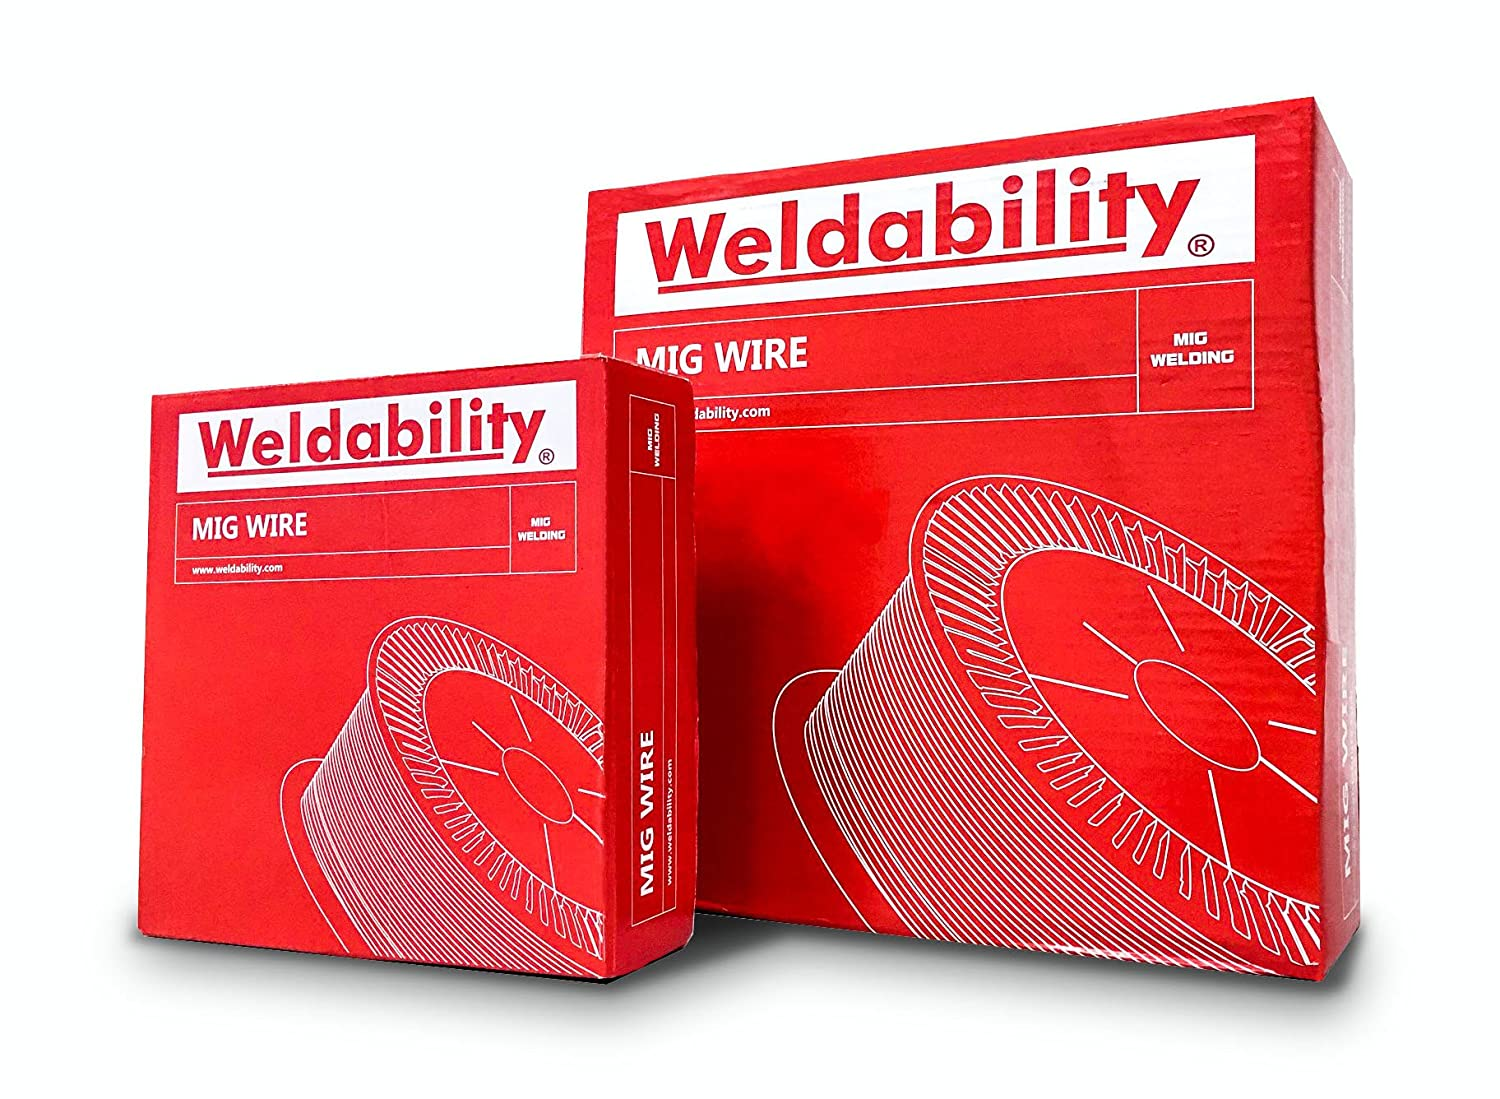 Pack of 2 Weldability Sif VZFC08045 Gasless Cored/MIG Wire 0.8mm 0.45kg